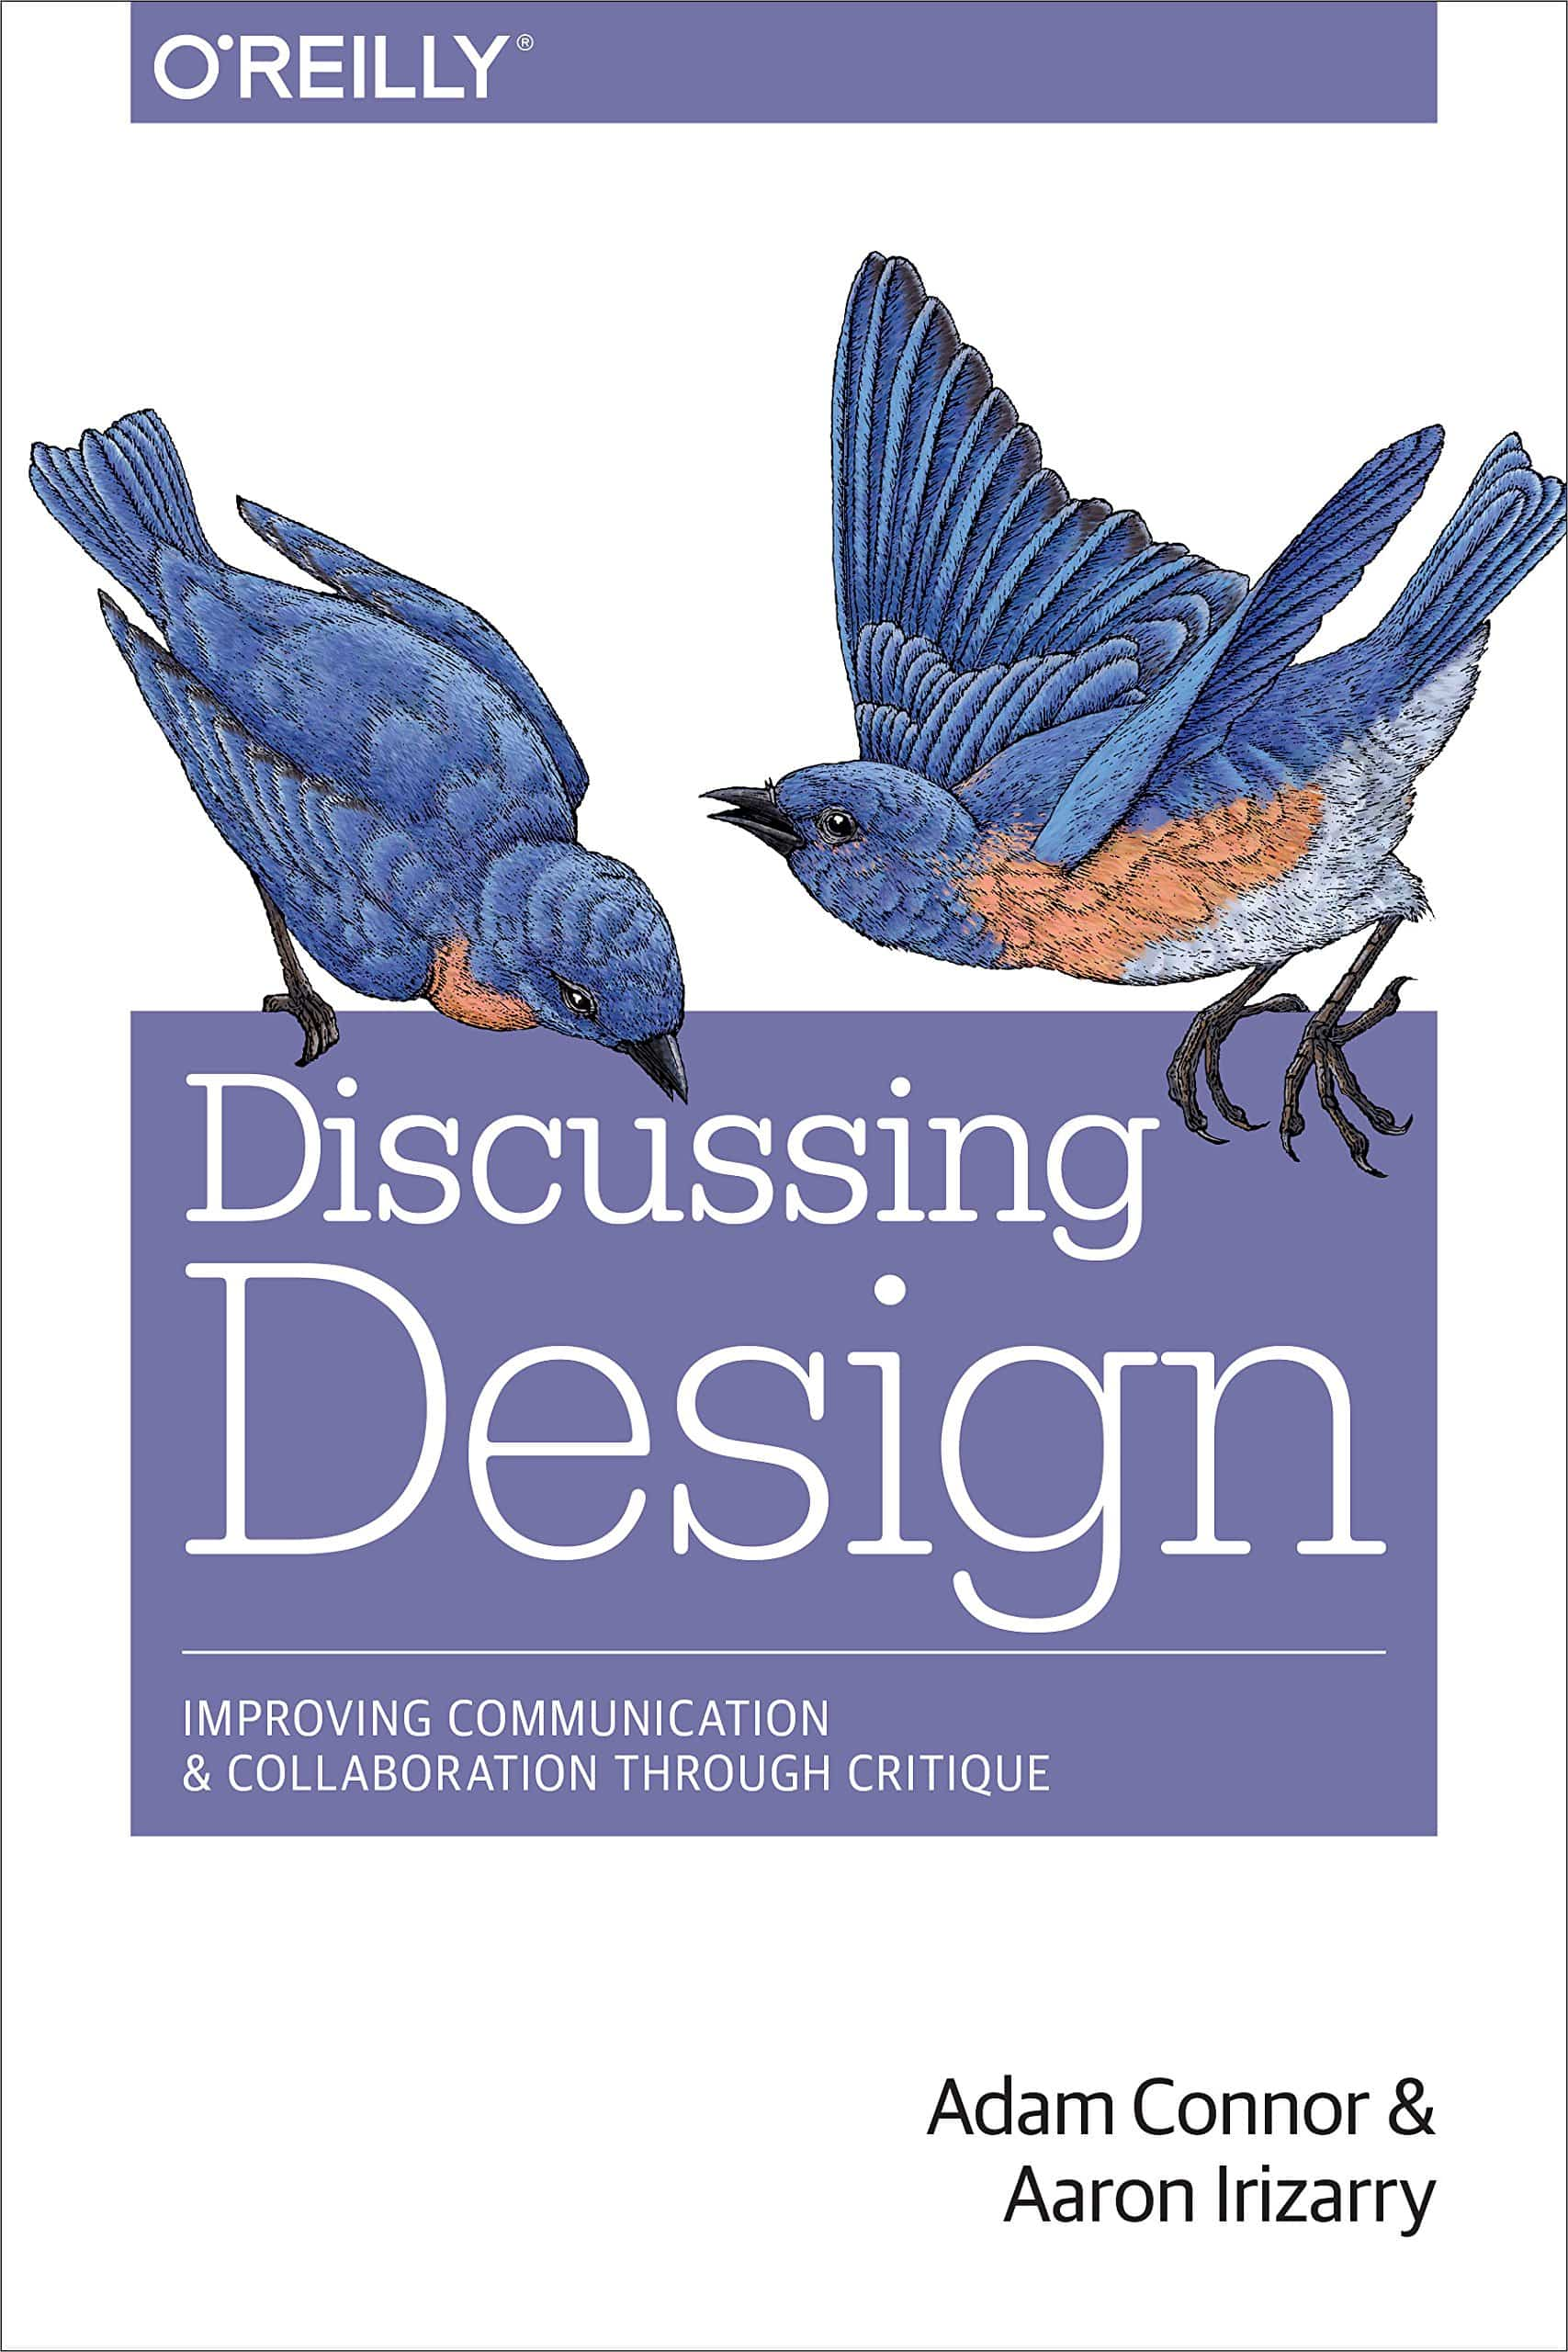 The cover of Discussing Design